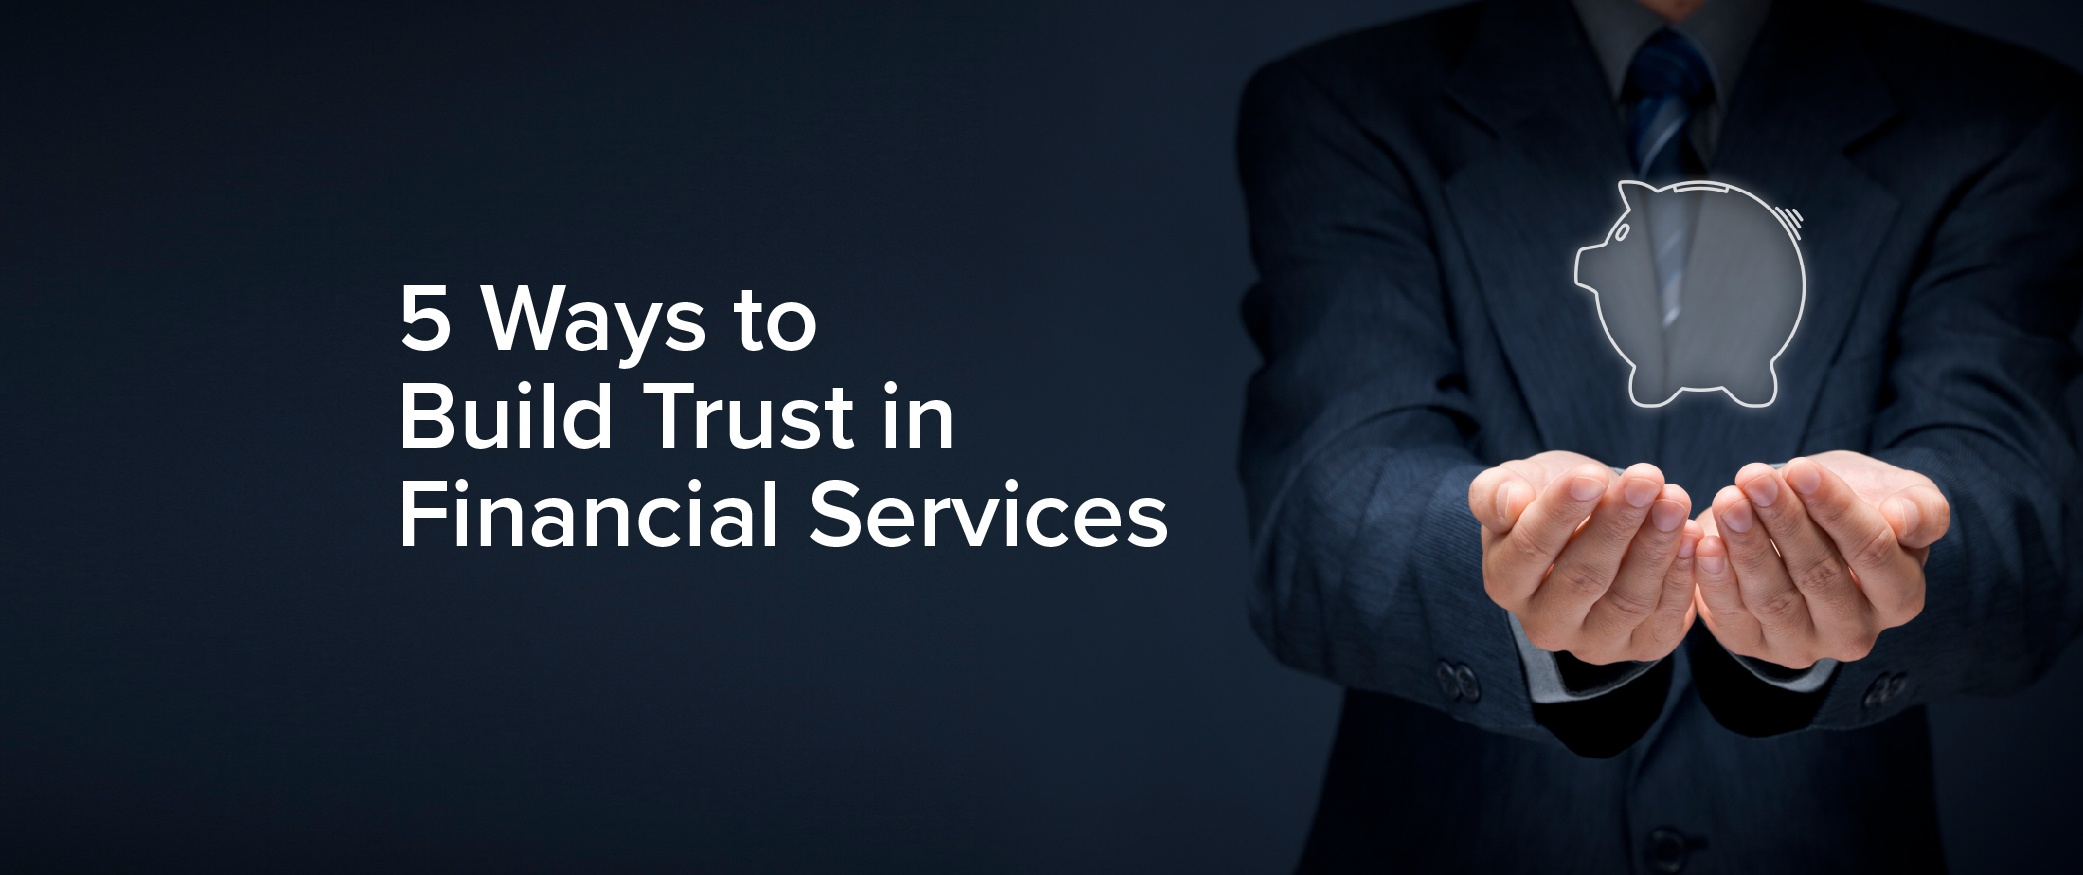 5 Honest Ways to Build Trust in Financial Services